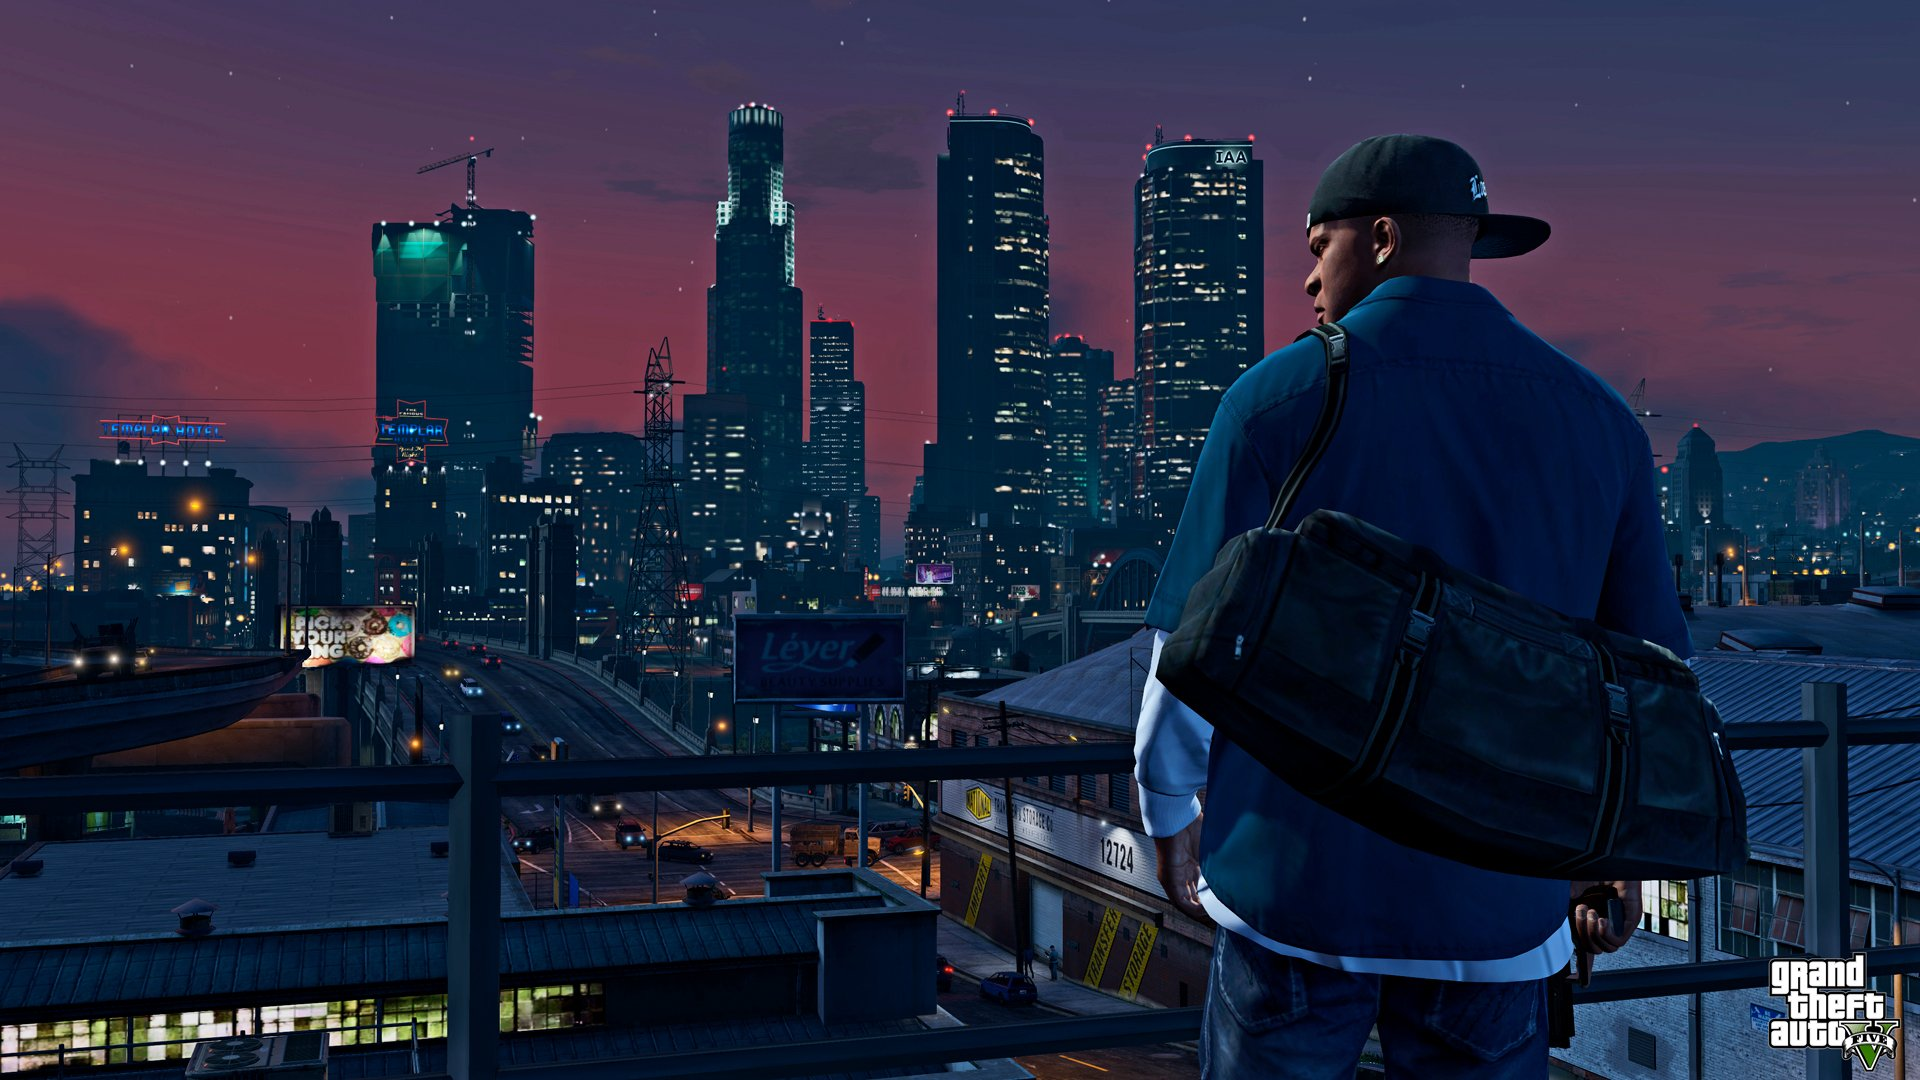 Grand Theft Auto V was the most-downloaded PS4 game in June 2018. Full charts: https://t.co/enxDX01eqv https://t.co/rjgBcr0Sgh